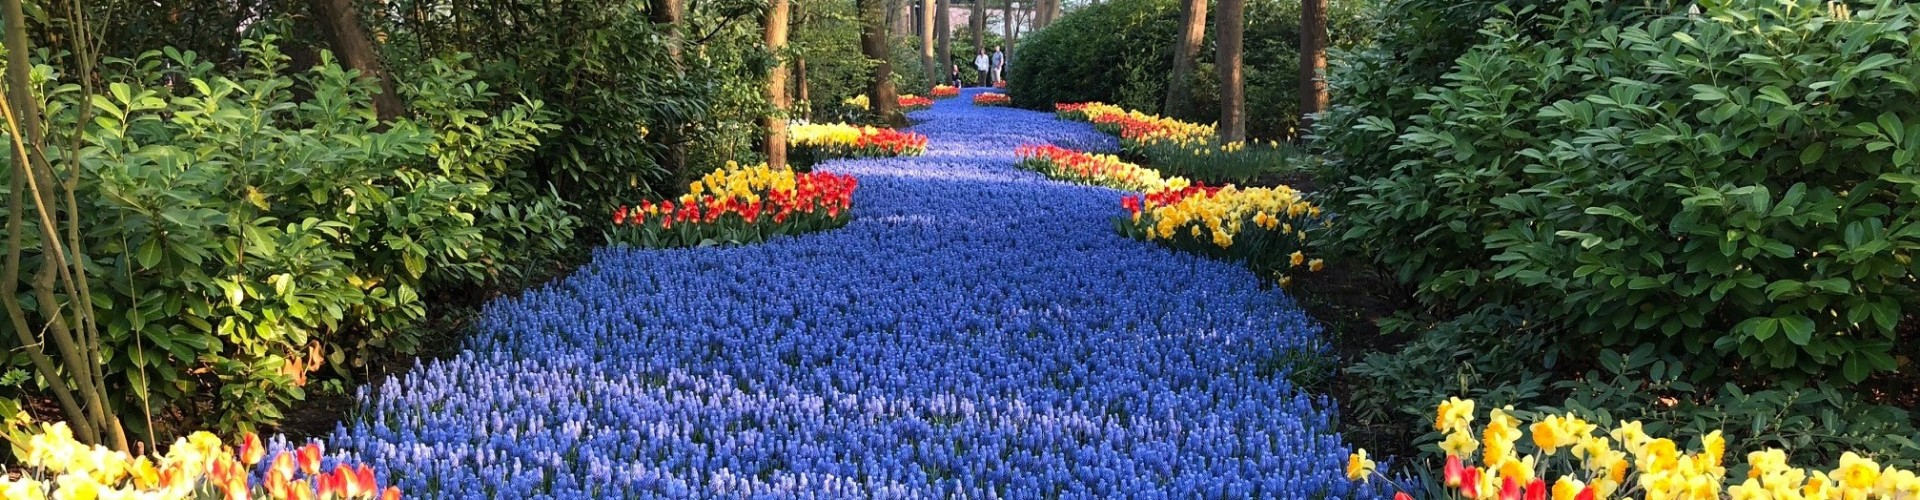 Private, guided and VIP Tours to flower destinations in Amsterdam, Holland.